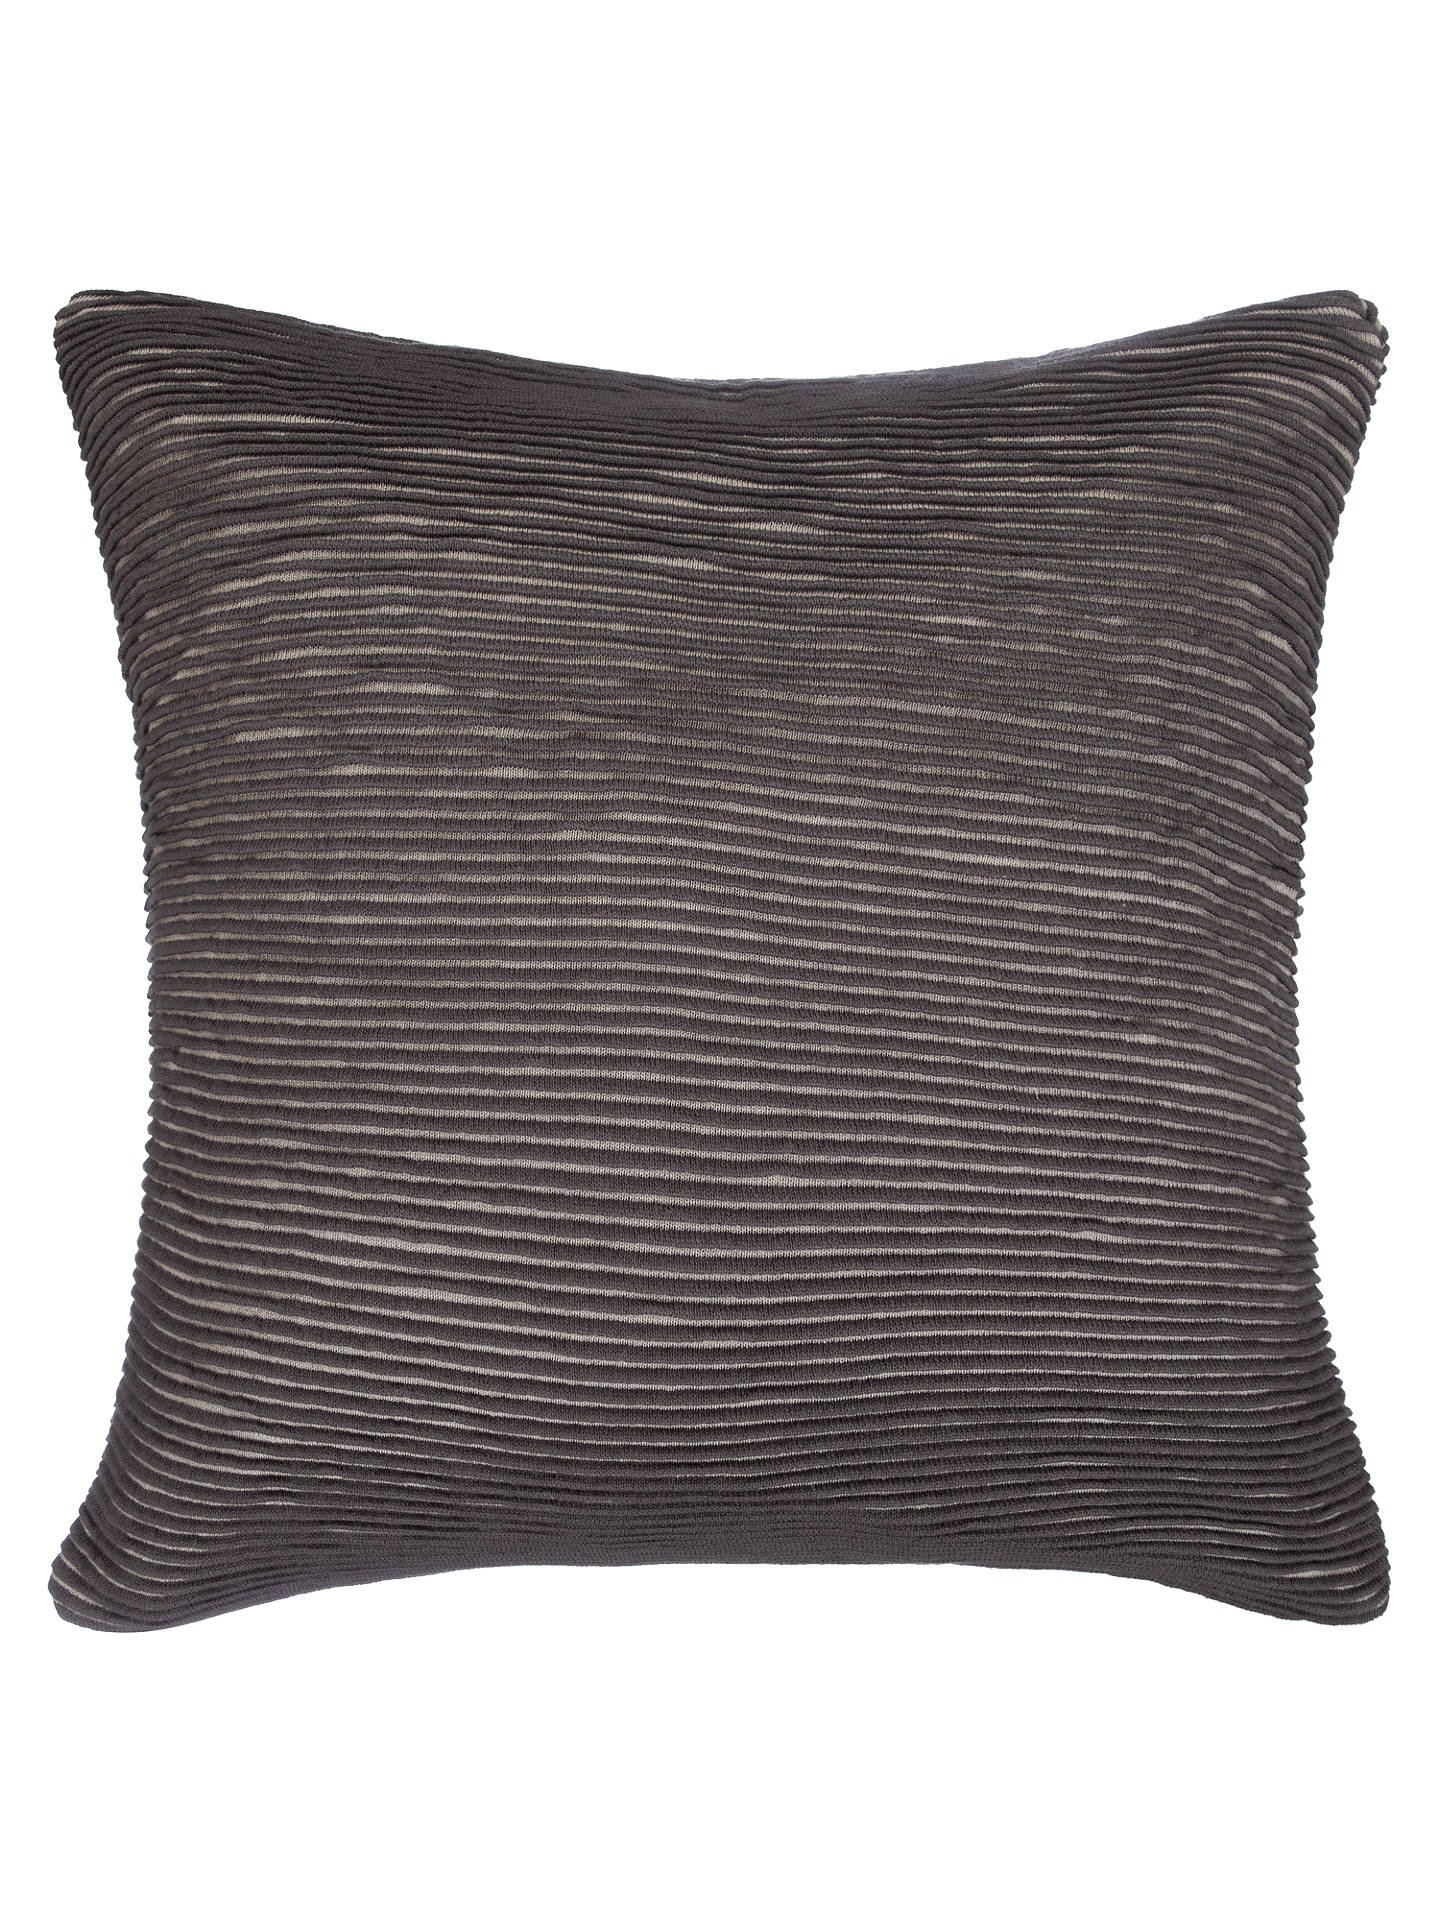 Buy John Lewis & Partners Rib Knit Cushion, Storm Online at johnlewis.com